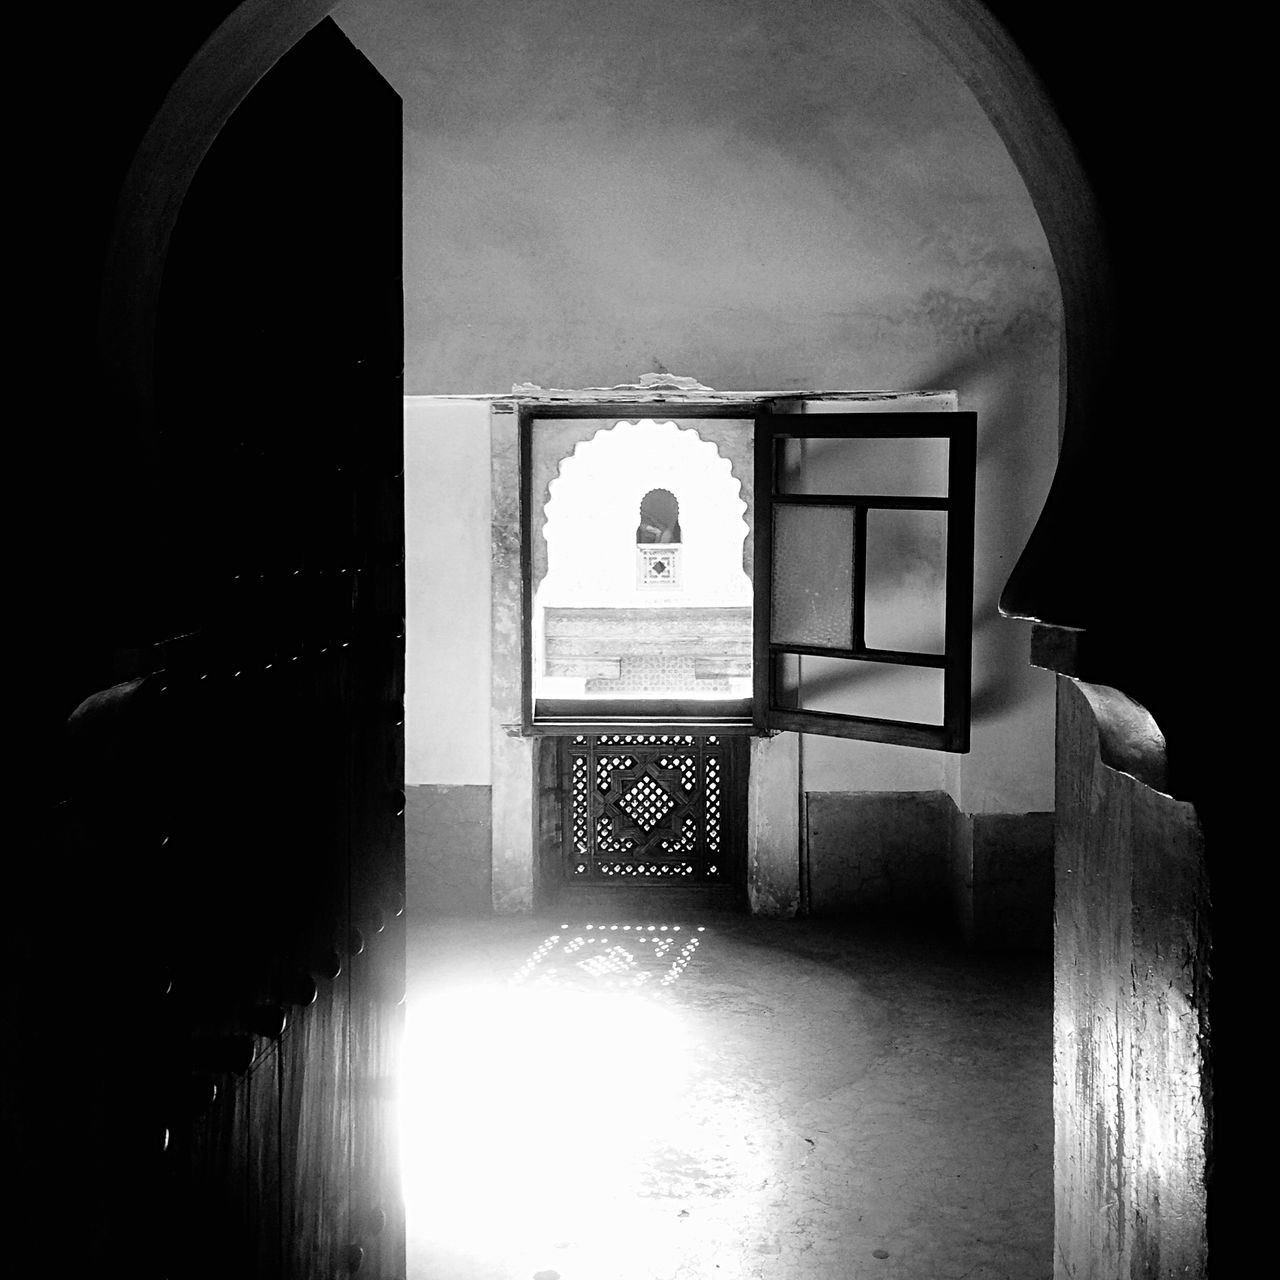 The Secret Spaces Ben Youssef Madrasa Marrakech Morroco